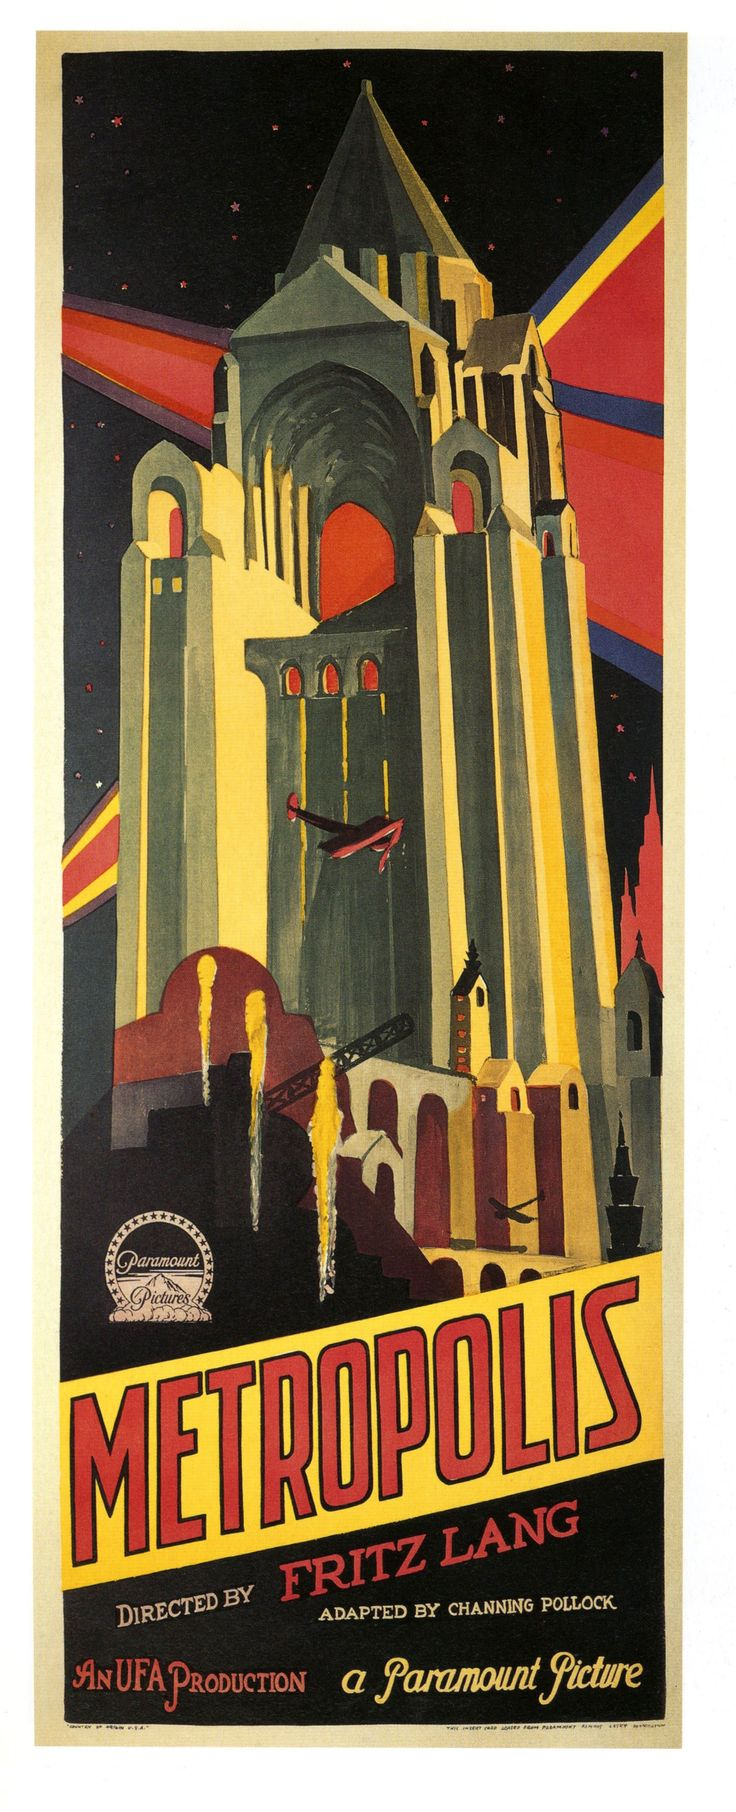 Metropolis is a 1927 German expressionist science-fiction film directed by Fritz Lang.